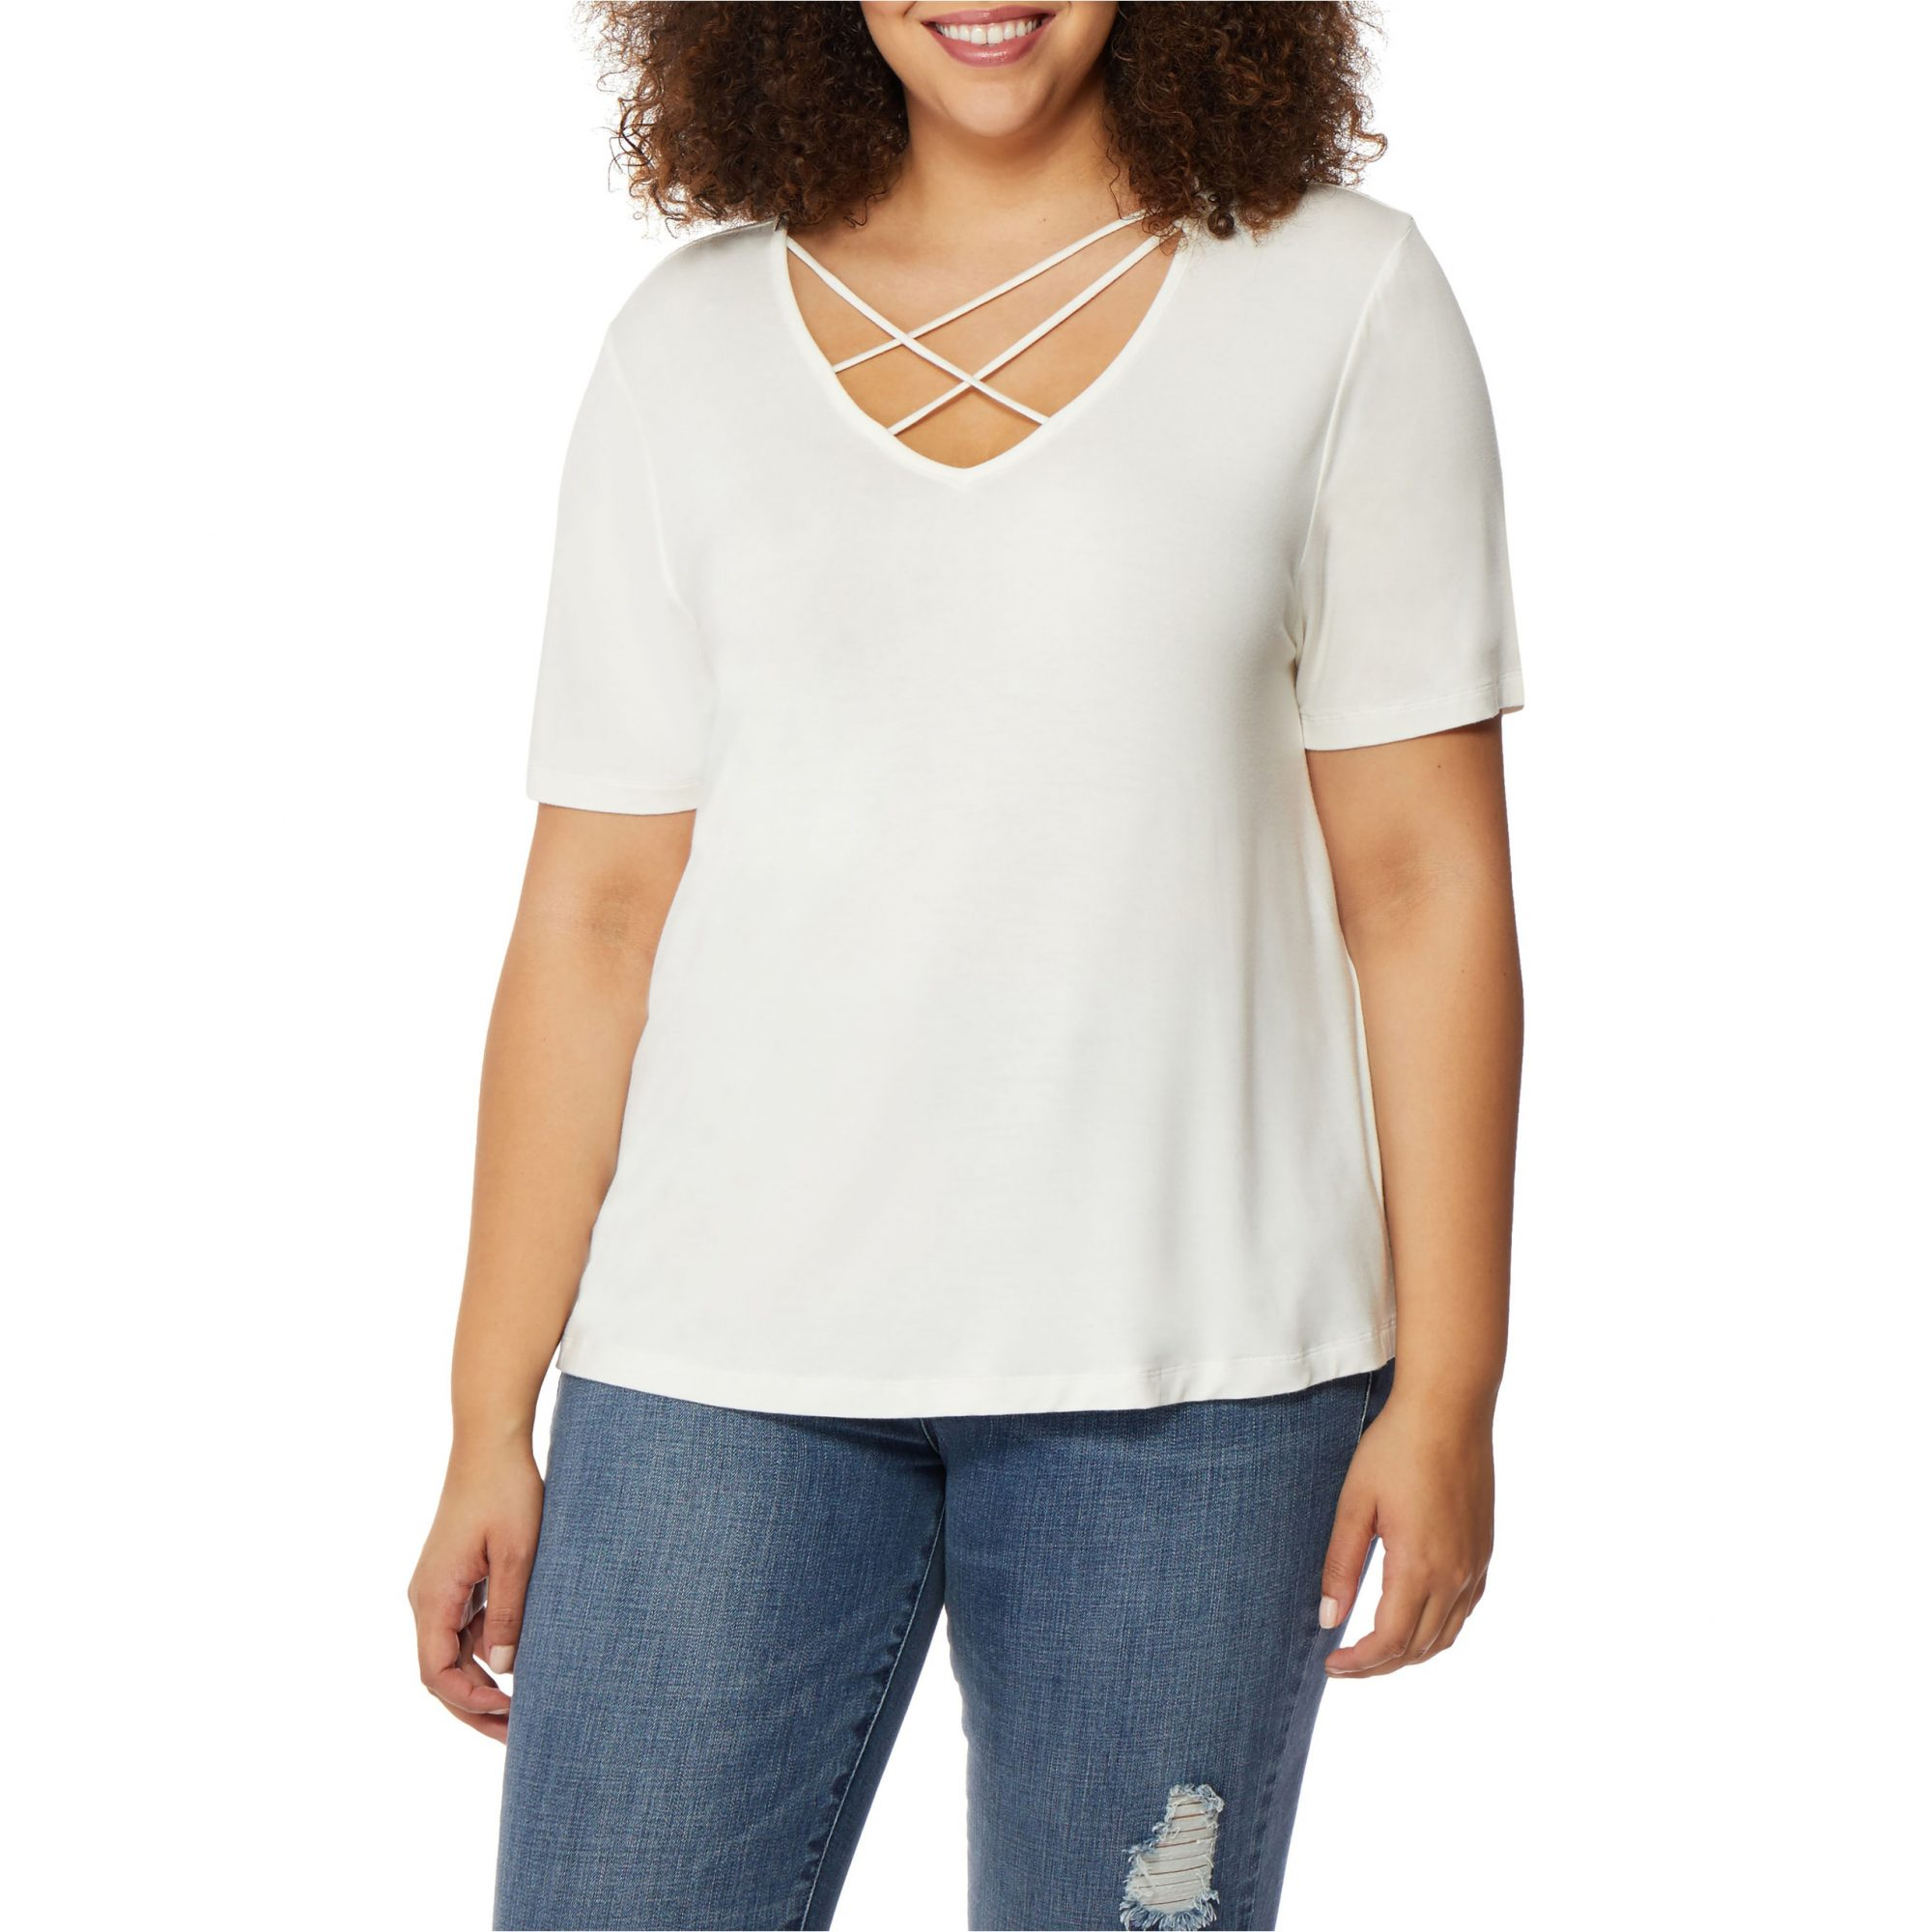 Cross Strap V-Neck Tee